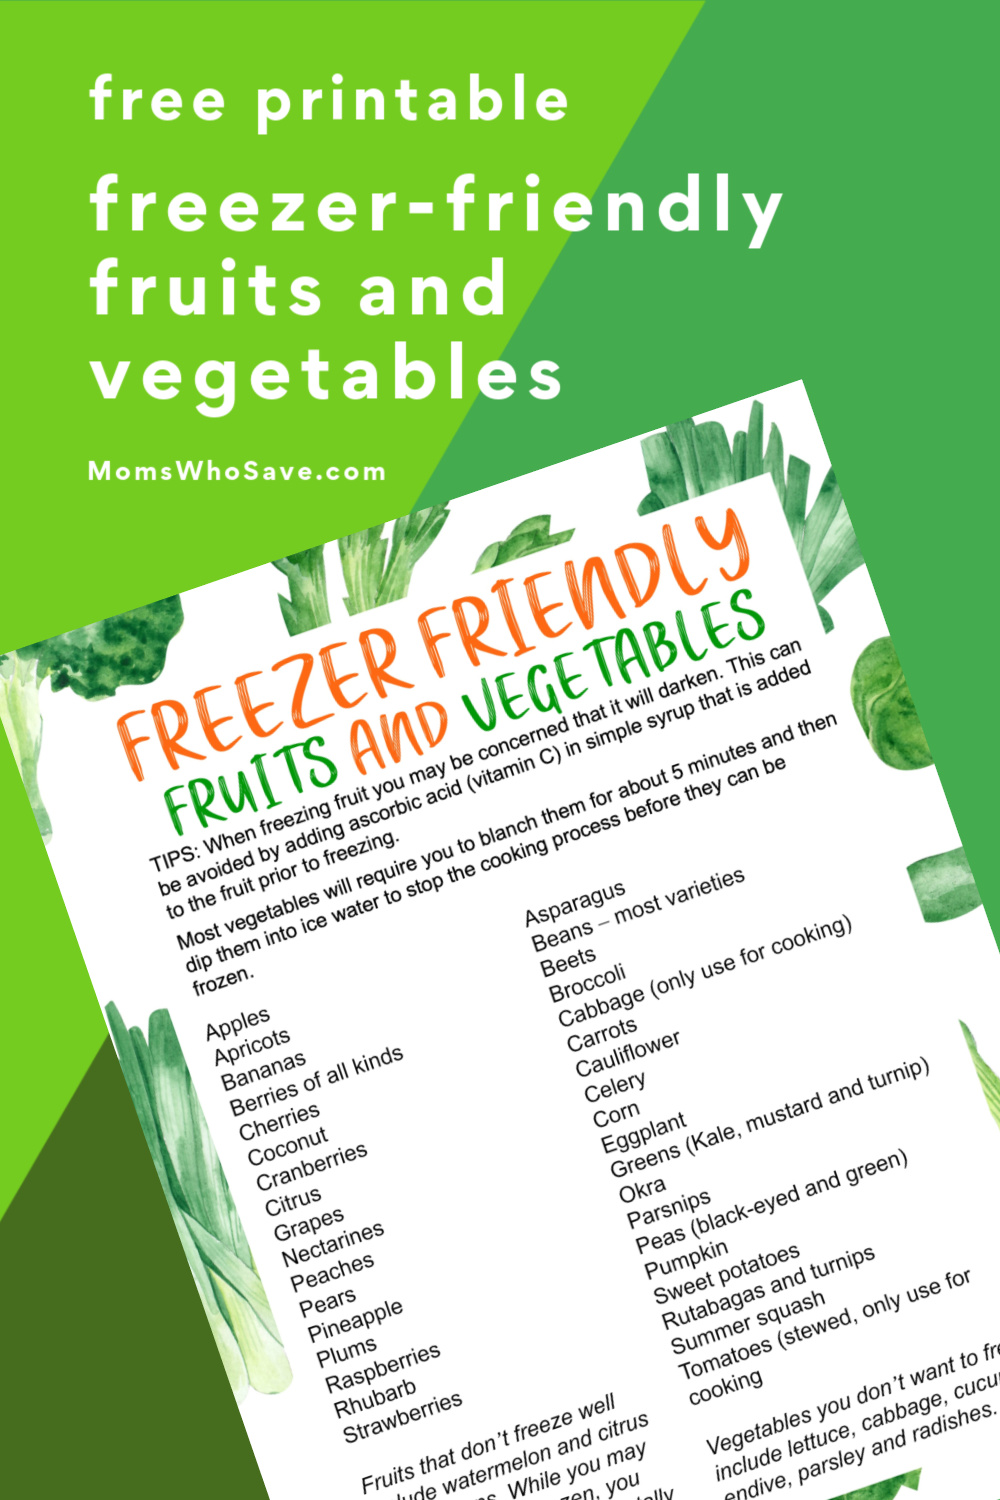 freezer friendly fruits and veggies